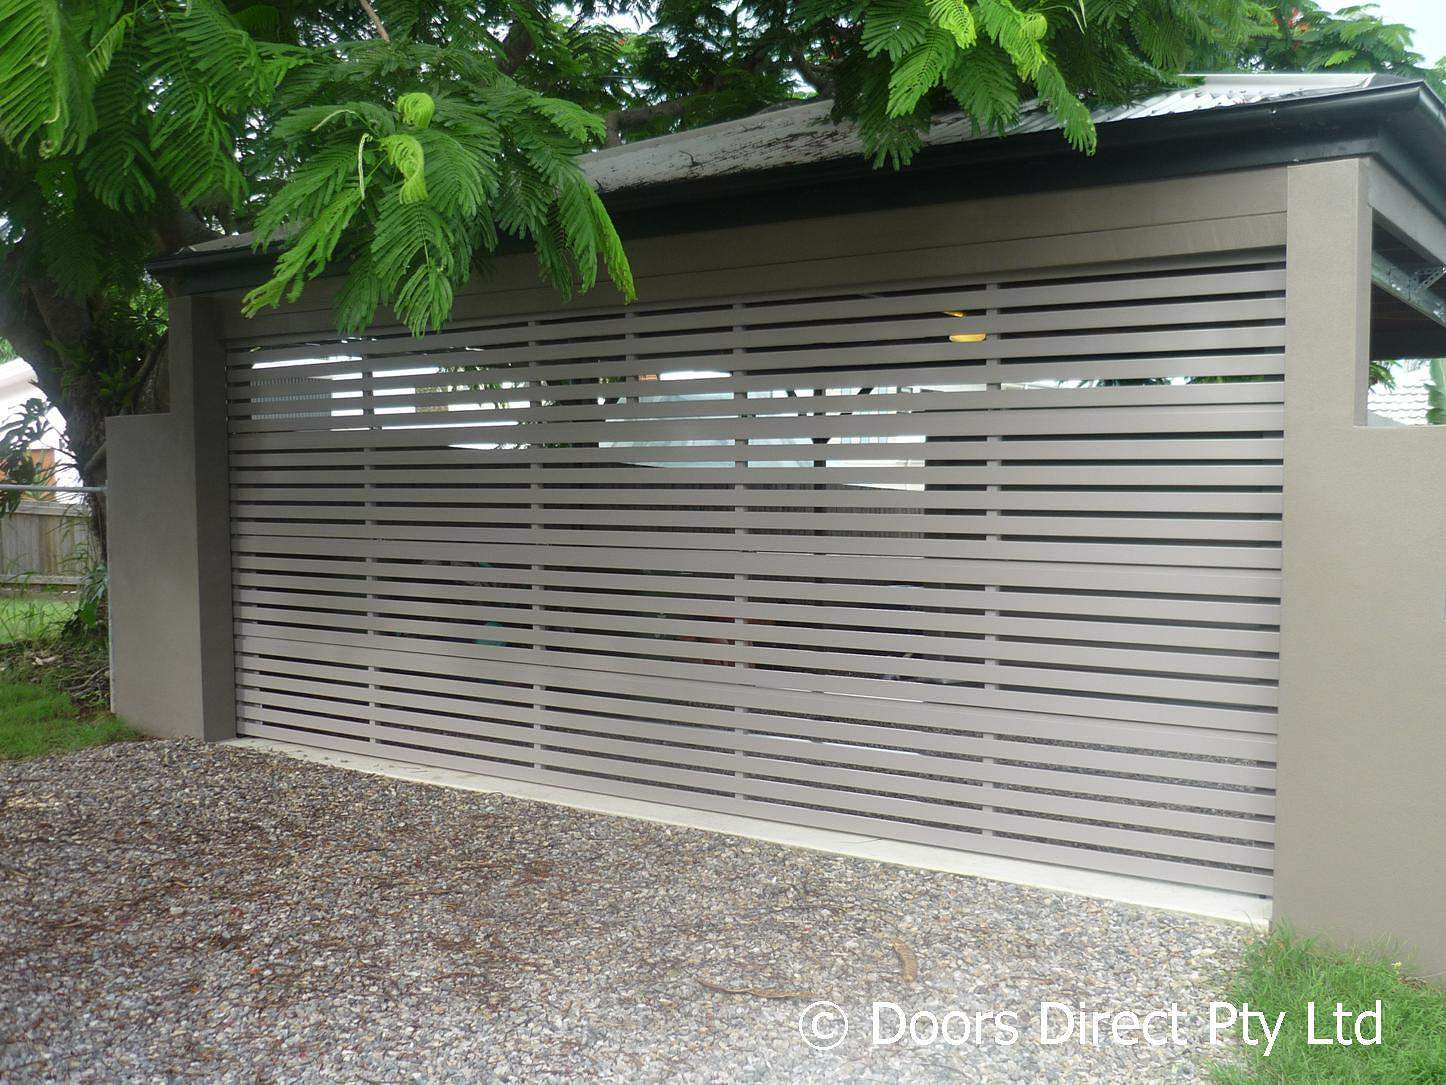 The Garage Door Specialists Doors Direct